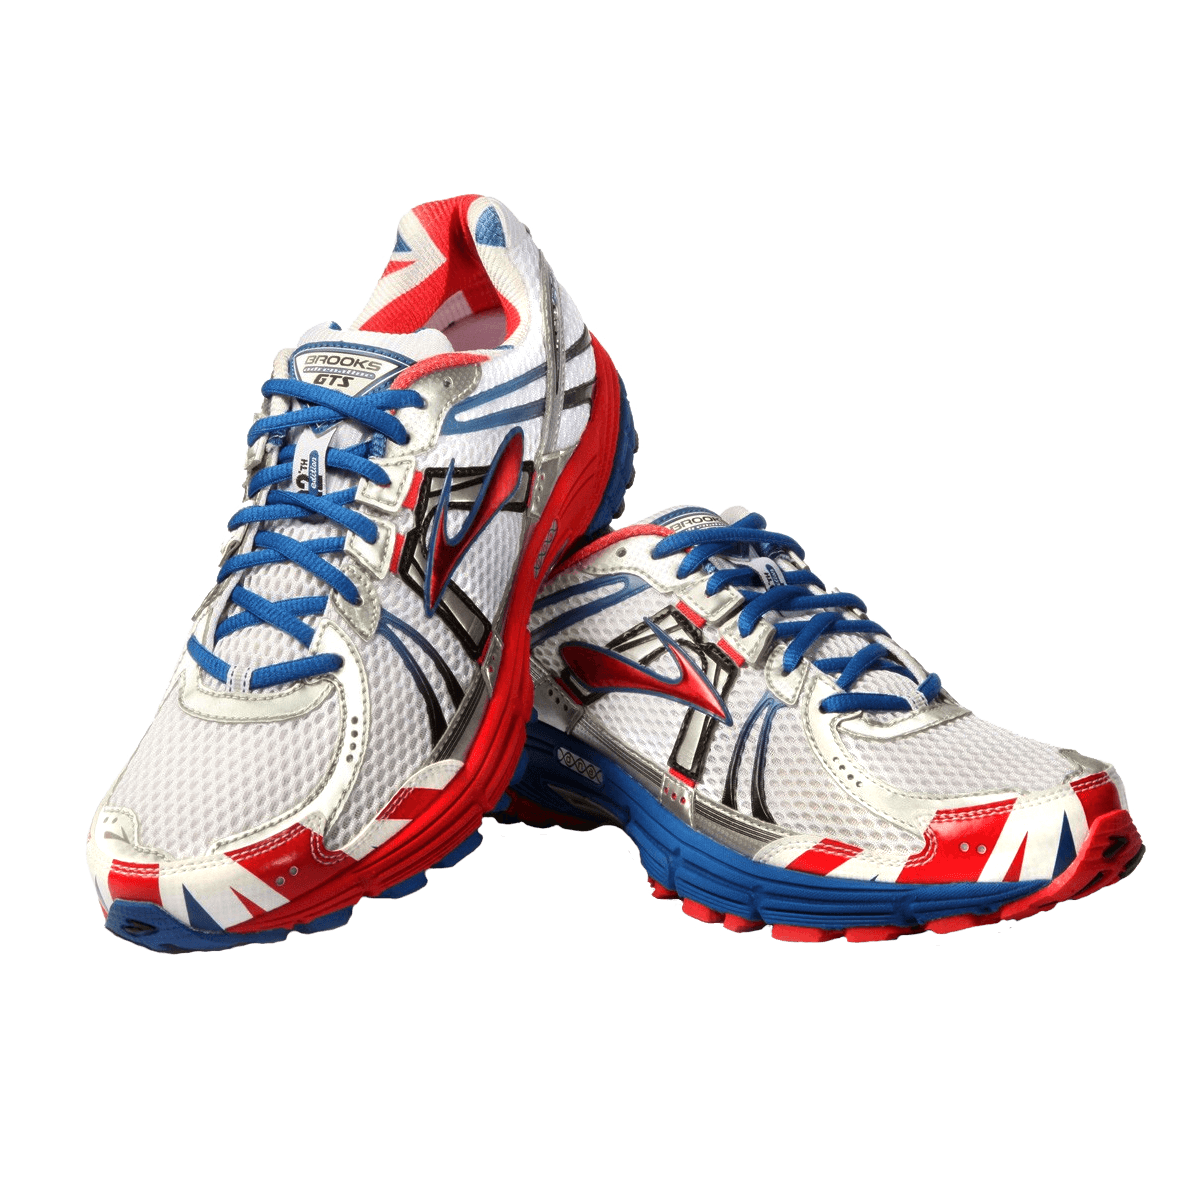 Running Shoes Png Image PNG Image